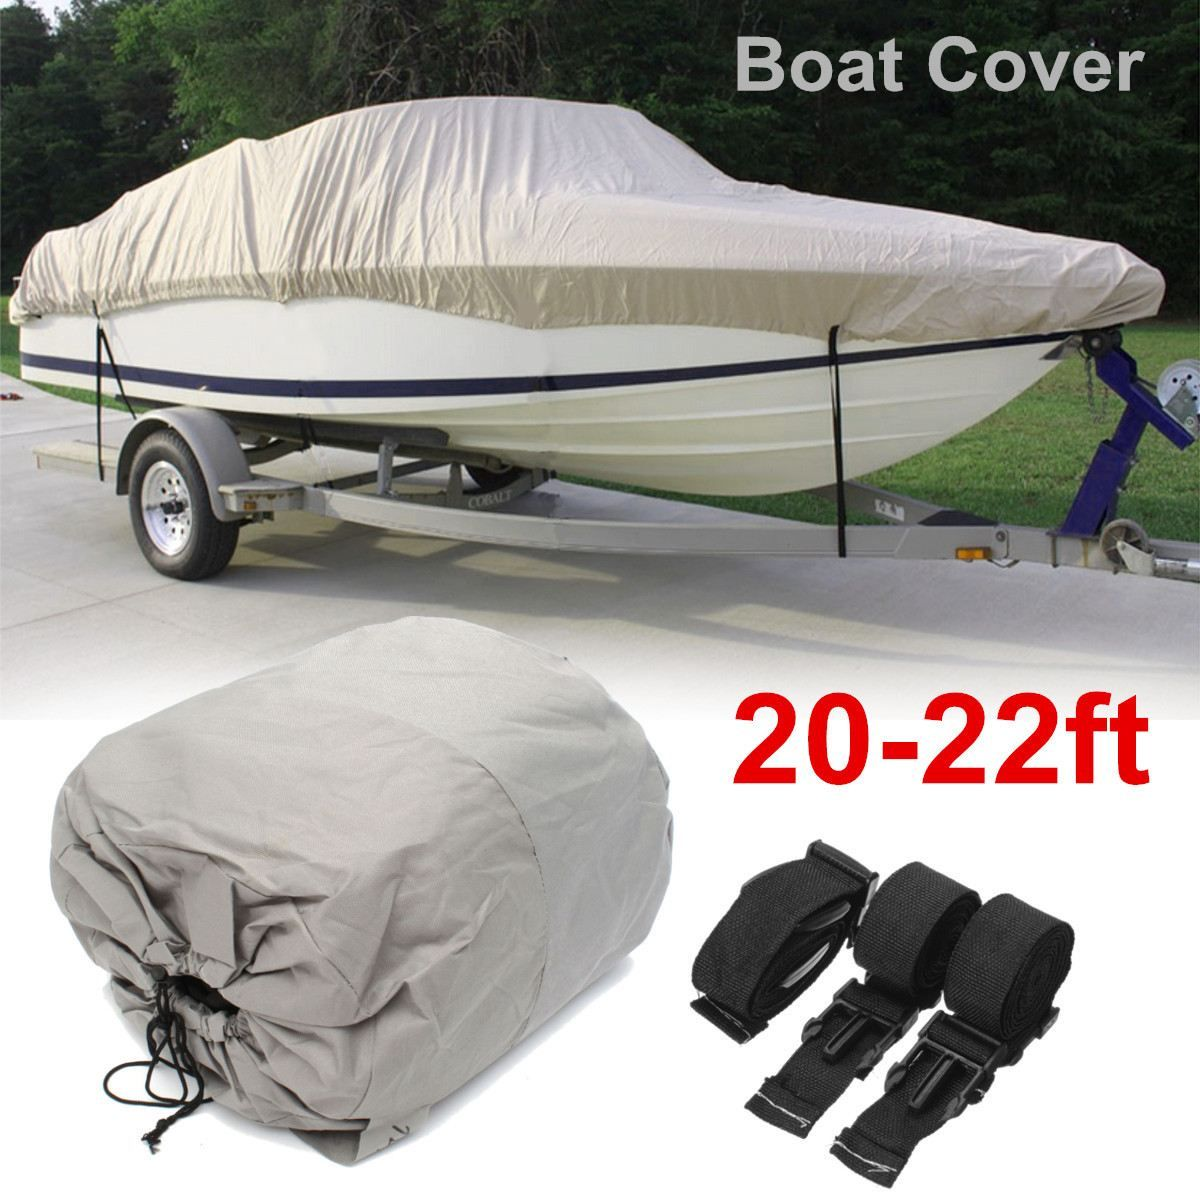 Cheap boat cover Buy Quality boat cover heavy duty directly from China heavy duty boat cover Suppliers Grey Waterproof Heavy Duty Speedboat Boat Cover ...  sc 1 st  Pinterest & 20-22ft 600D Grey Waterproof Heavy Duty Speedboat Boat Cover ...